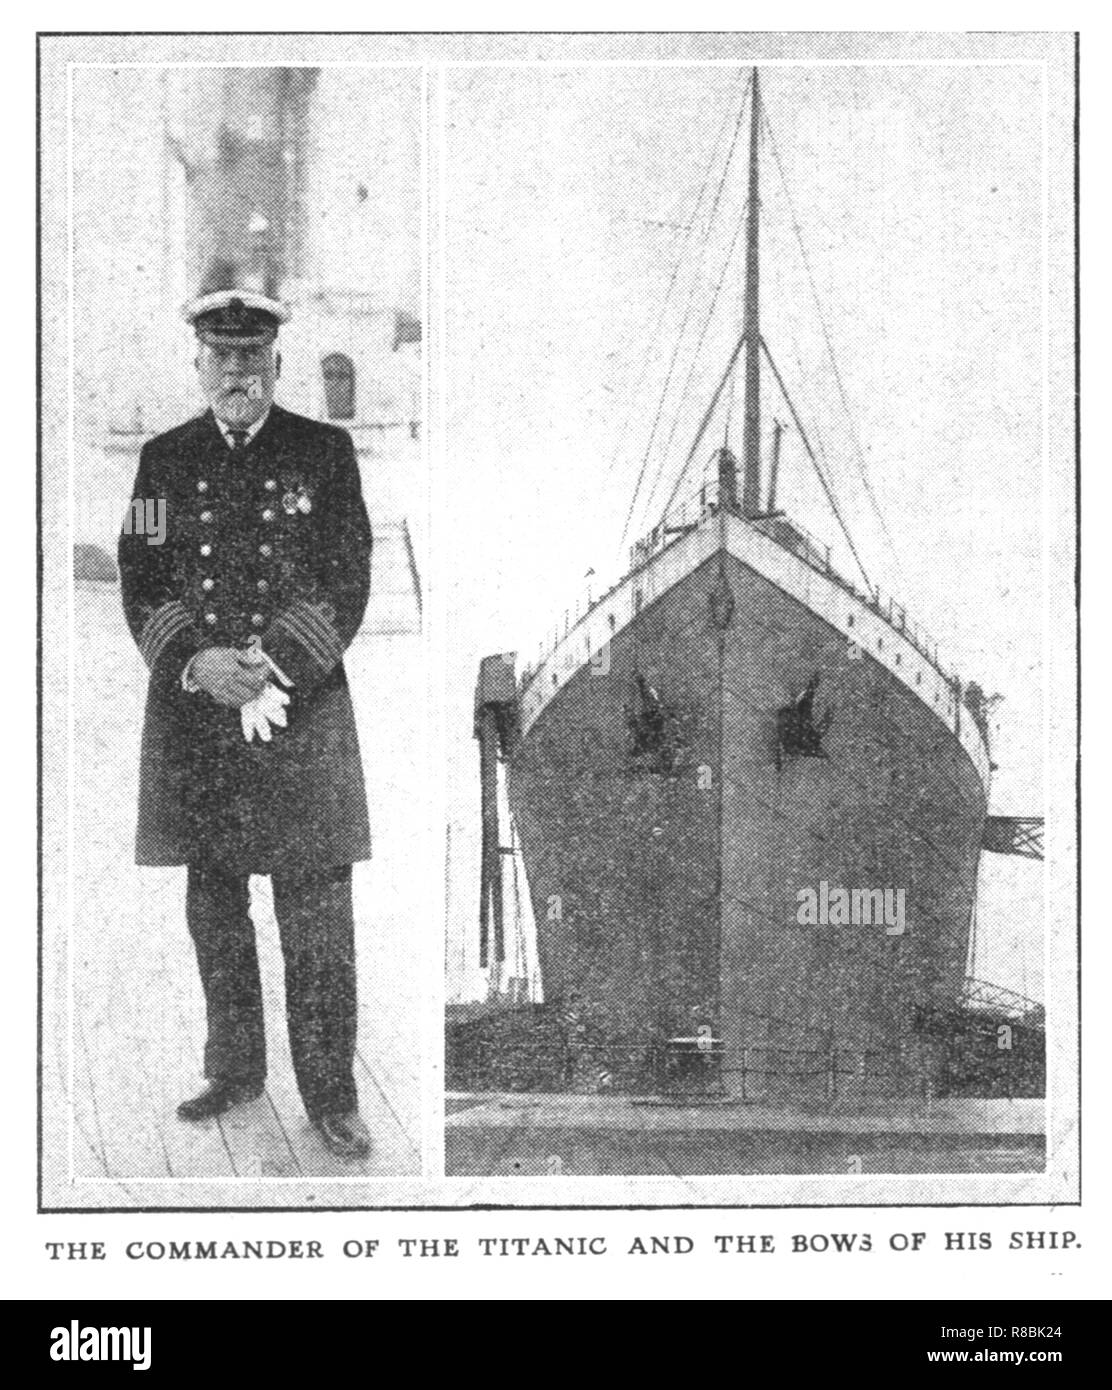 'The Commander of the Titanic and the Bows of his Ship', (April 20), 1912. Captain Edward Smith (1850-1912) went down with his ship, and consequently became an icon of British 'stiff upper lip' spirit, due to his stoicism and fortitude in the face of adversity. The White Star Line ship RMS 'Titanic' struck an iceberg in thick fog off Newfoundland on 14 April 1912. She was the largest and most luxurious ocean liner of her time, and thought to be unsinkable. In the collision, five of her watertight compartments were compromised and she sank. Out of the 2228 people on board, only 705 survived. A  - Stock Image